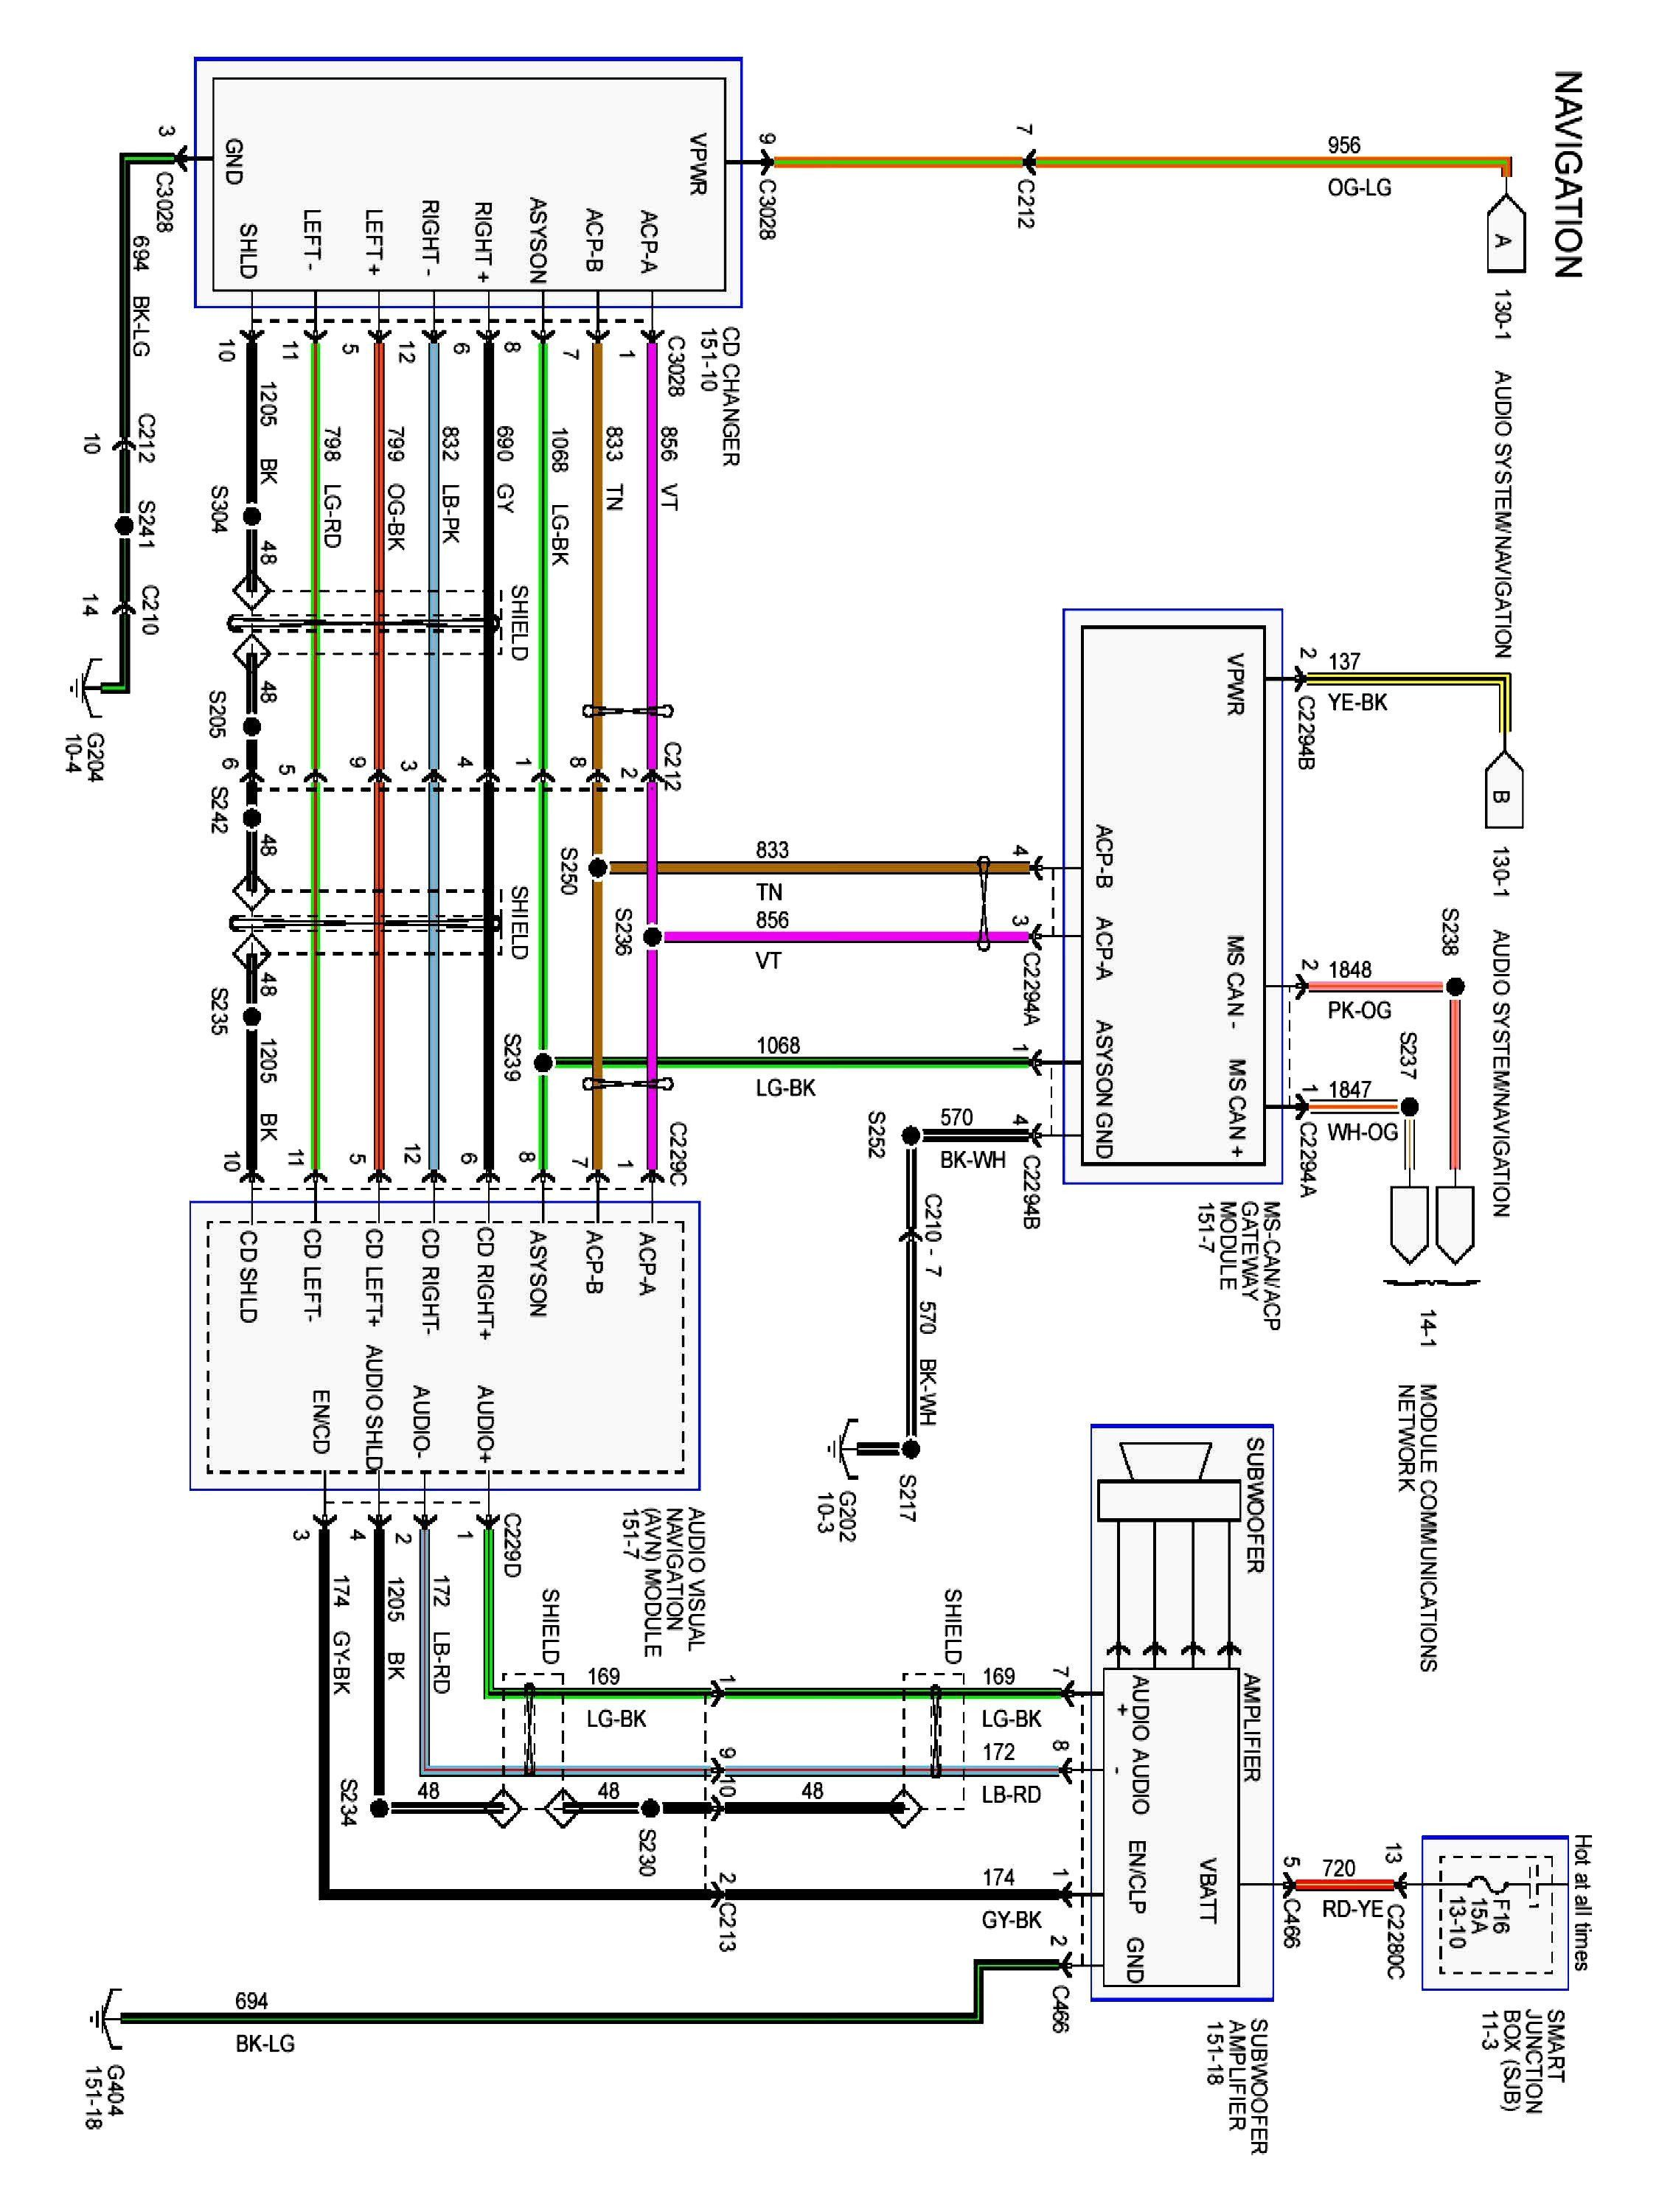 35 Ford Head Light Switch Wiring Diagram - bookingritzcarlton.info | Ford  expedition, Electrical wiring diagram, Electrical diagram